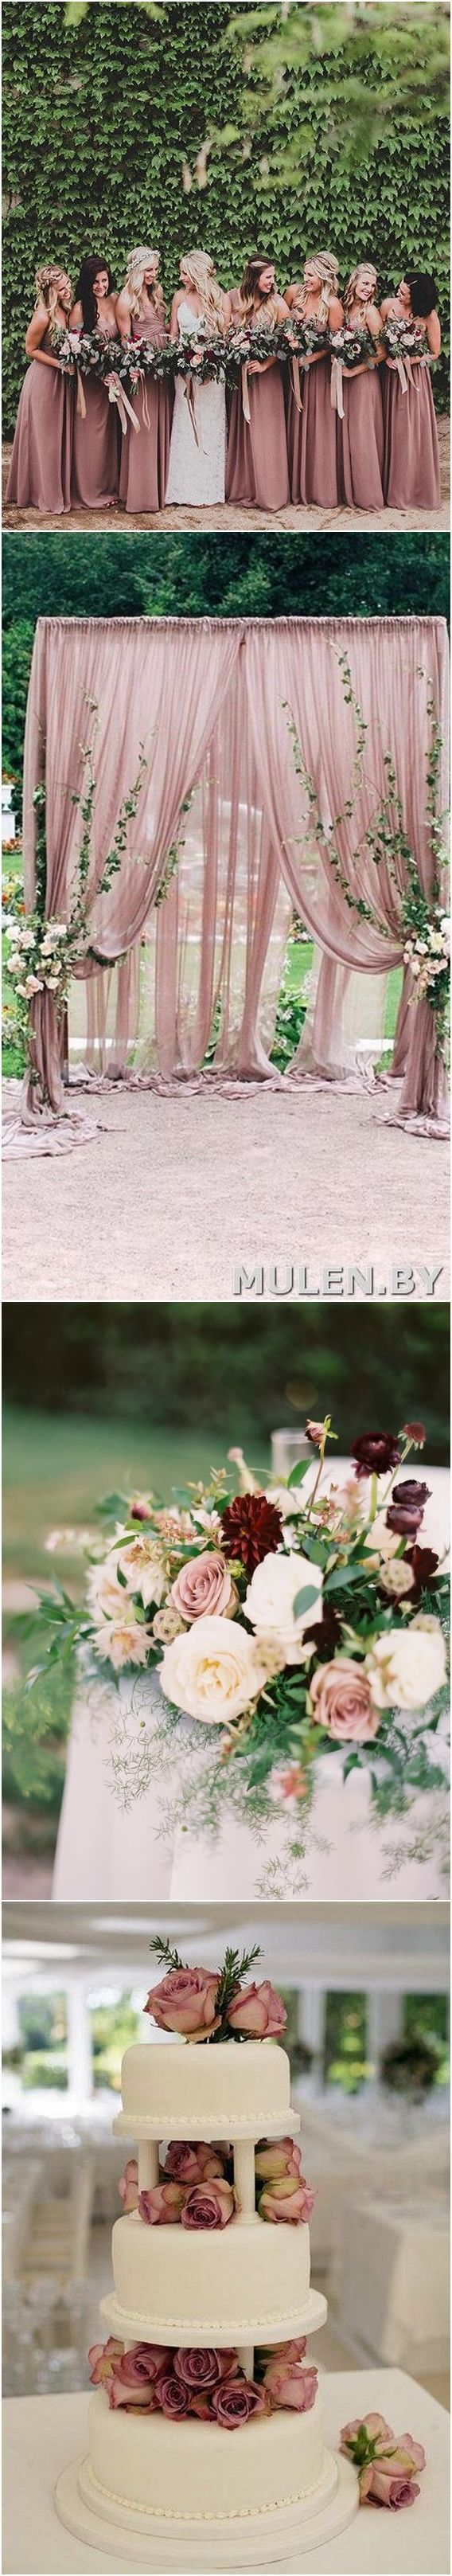 Dusty rose fall wedding color  ideas / http://www.deerpearlflowers.com/28-dusty-rose-wedding-color-ideas/